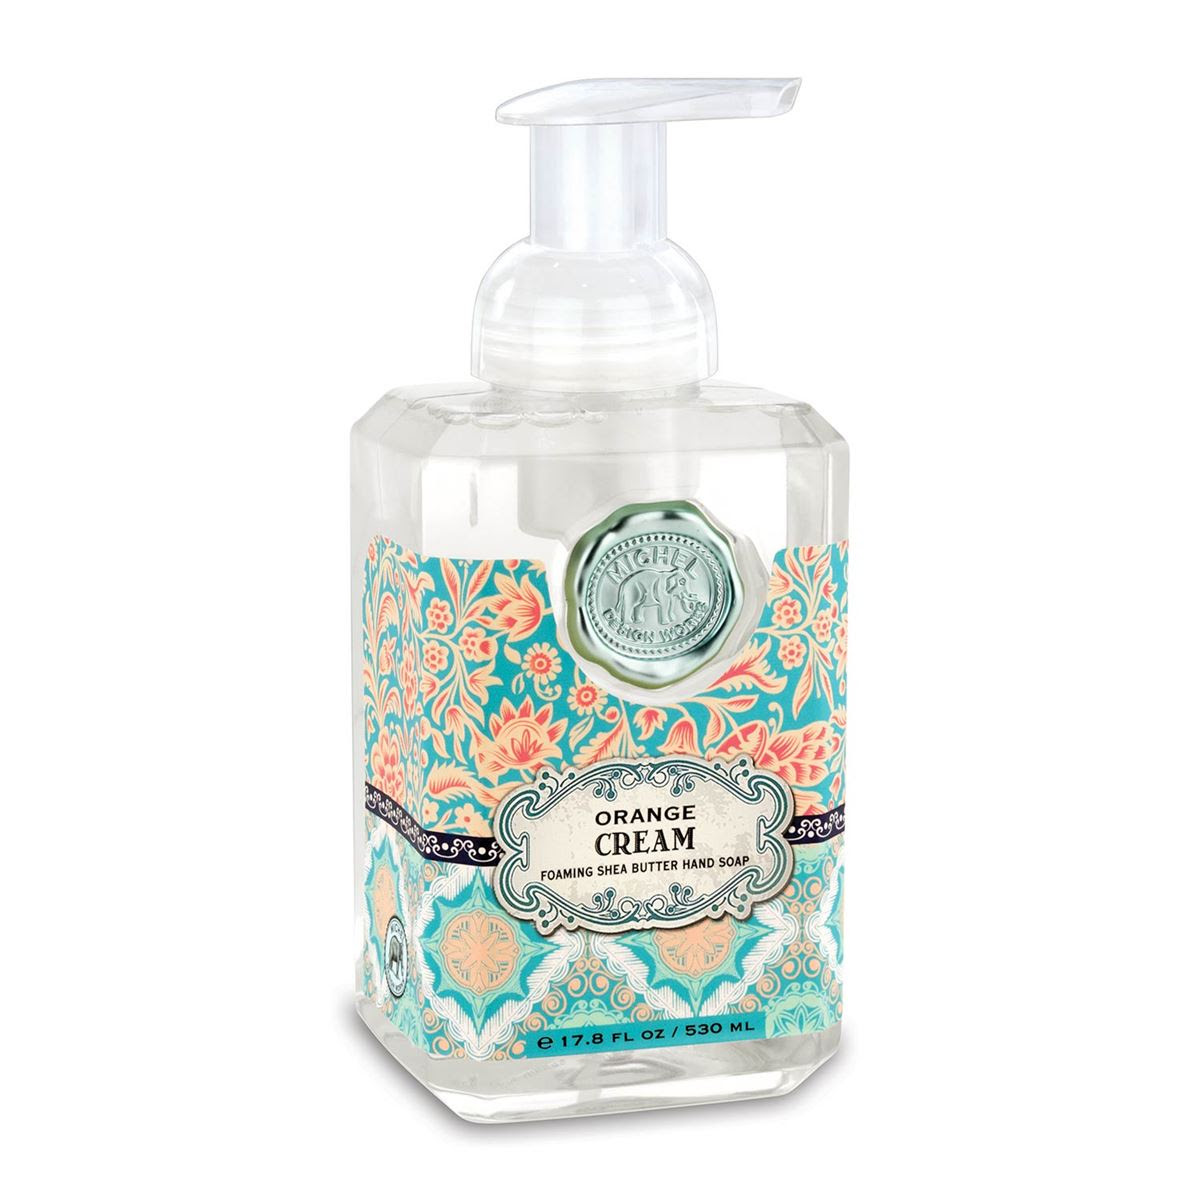 Foaming Hand Soap By Michel Design Works Orange Cream